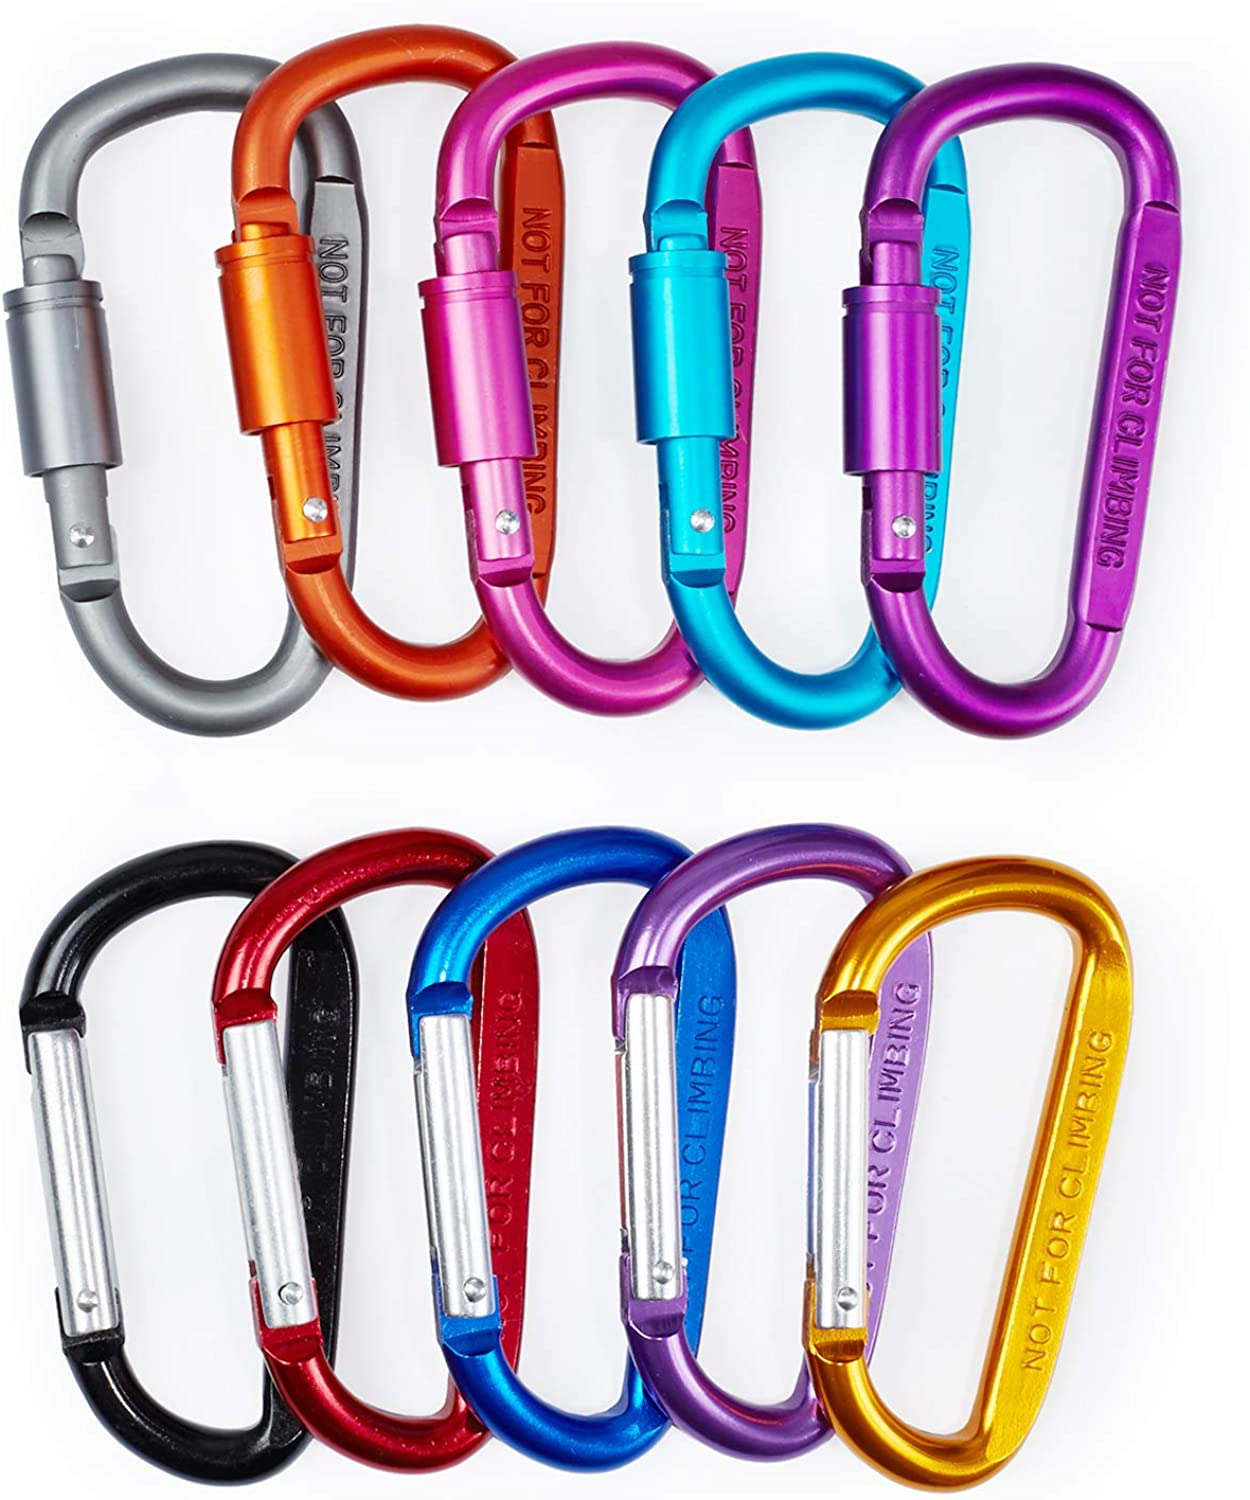 Carabiner Aluminium Alloy Lightweight D Ring Carabiners Clips Hook for Home Camping Fishing Hiking Traveling